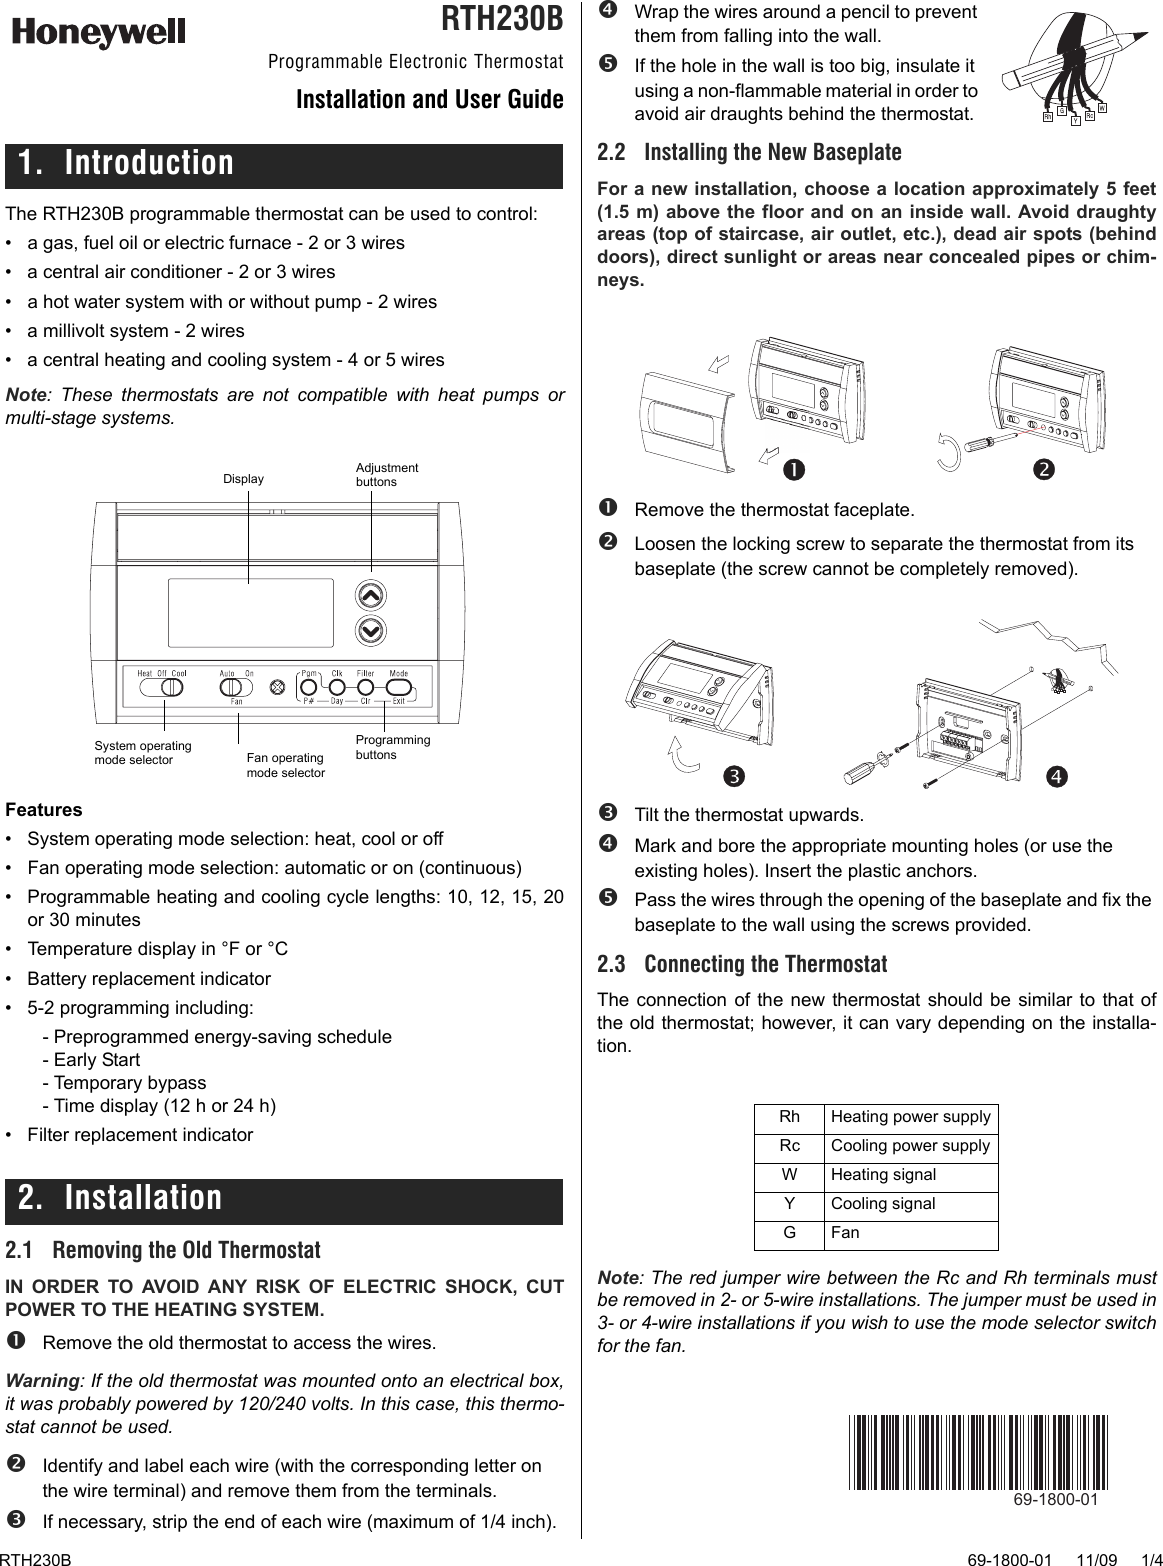 Wiring A Thermostat Manual Guide